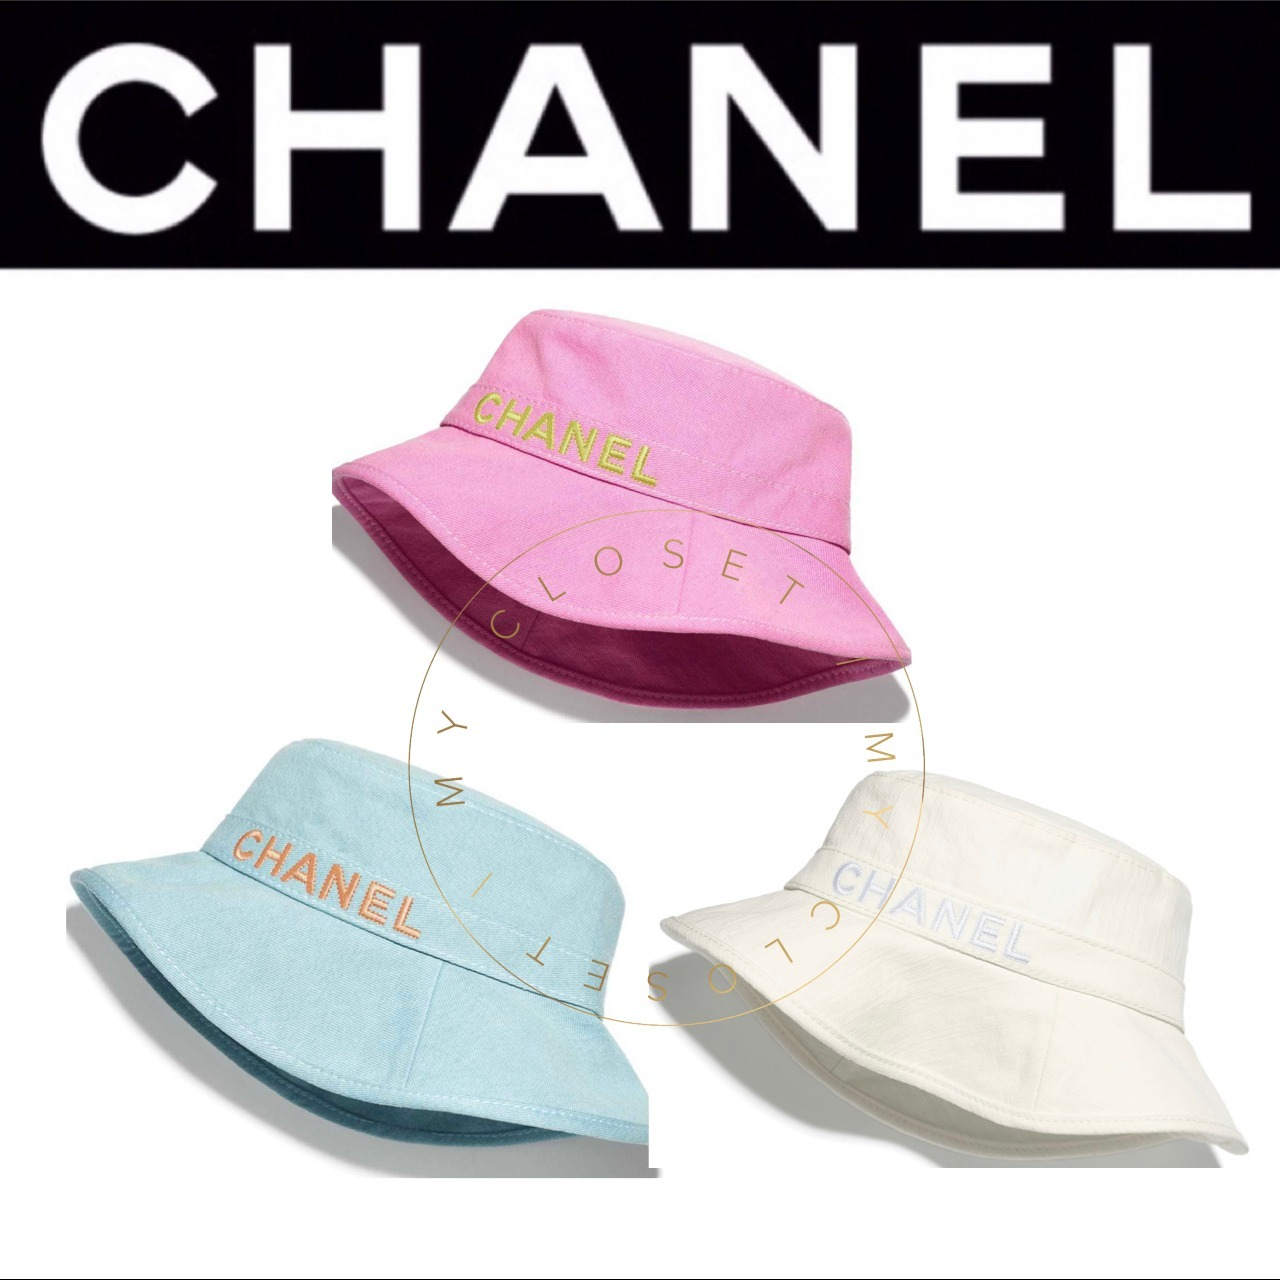 CHANEL 帽子 ハット ロゴ  限定 青 コットン ピンク 直営店 (CHANEL/ハット) 65684962